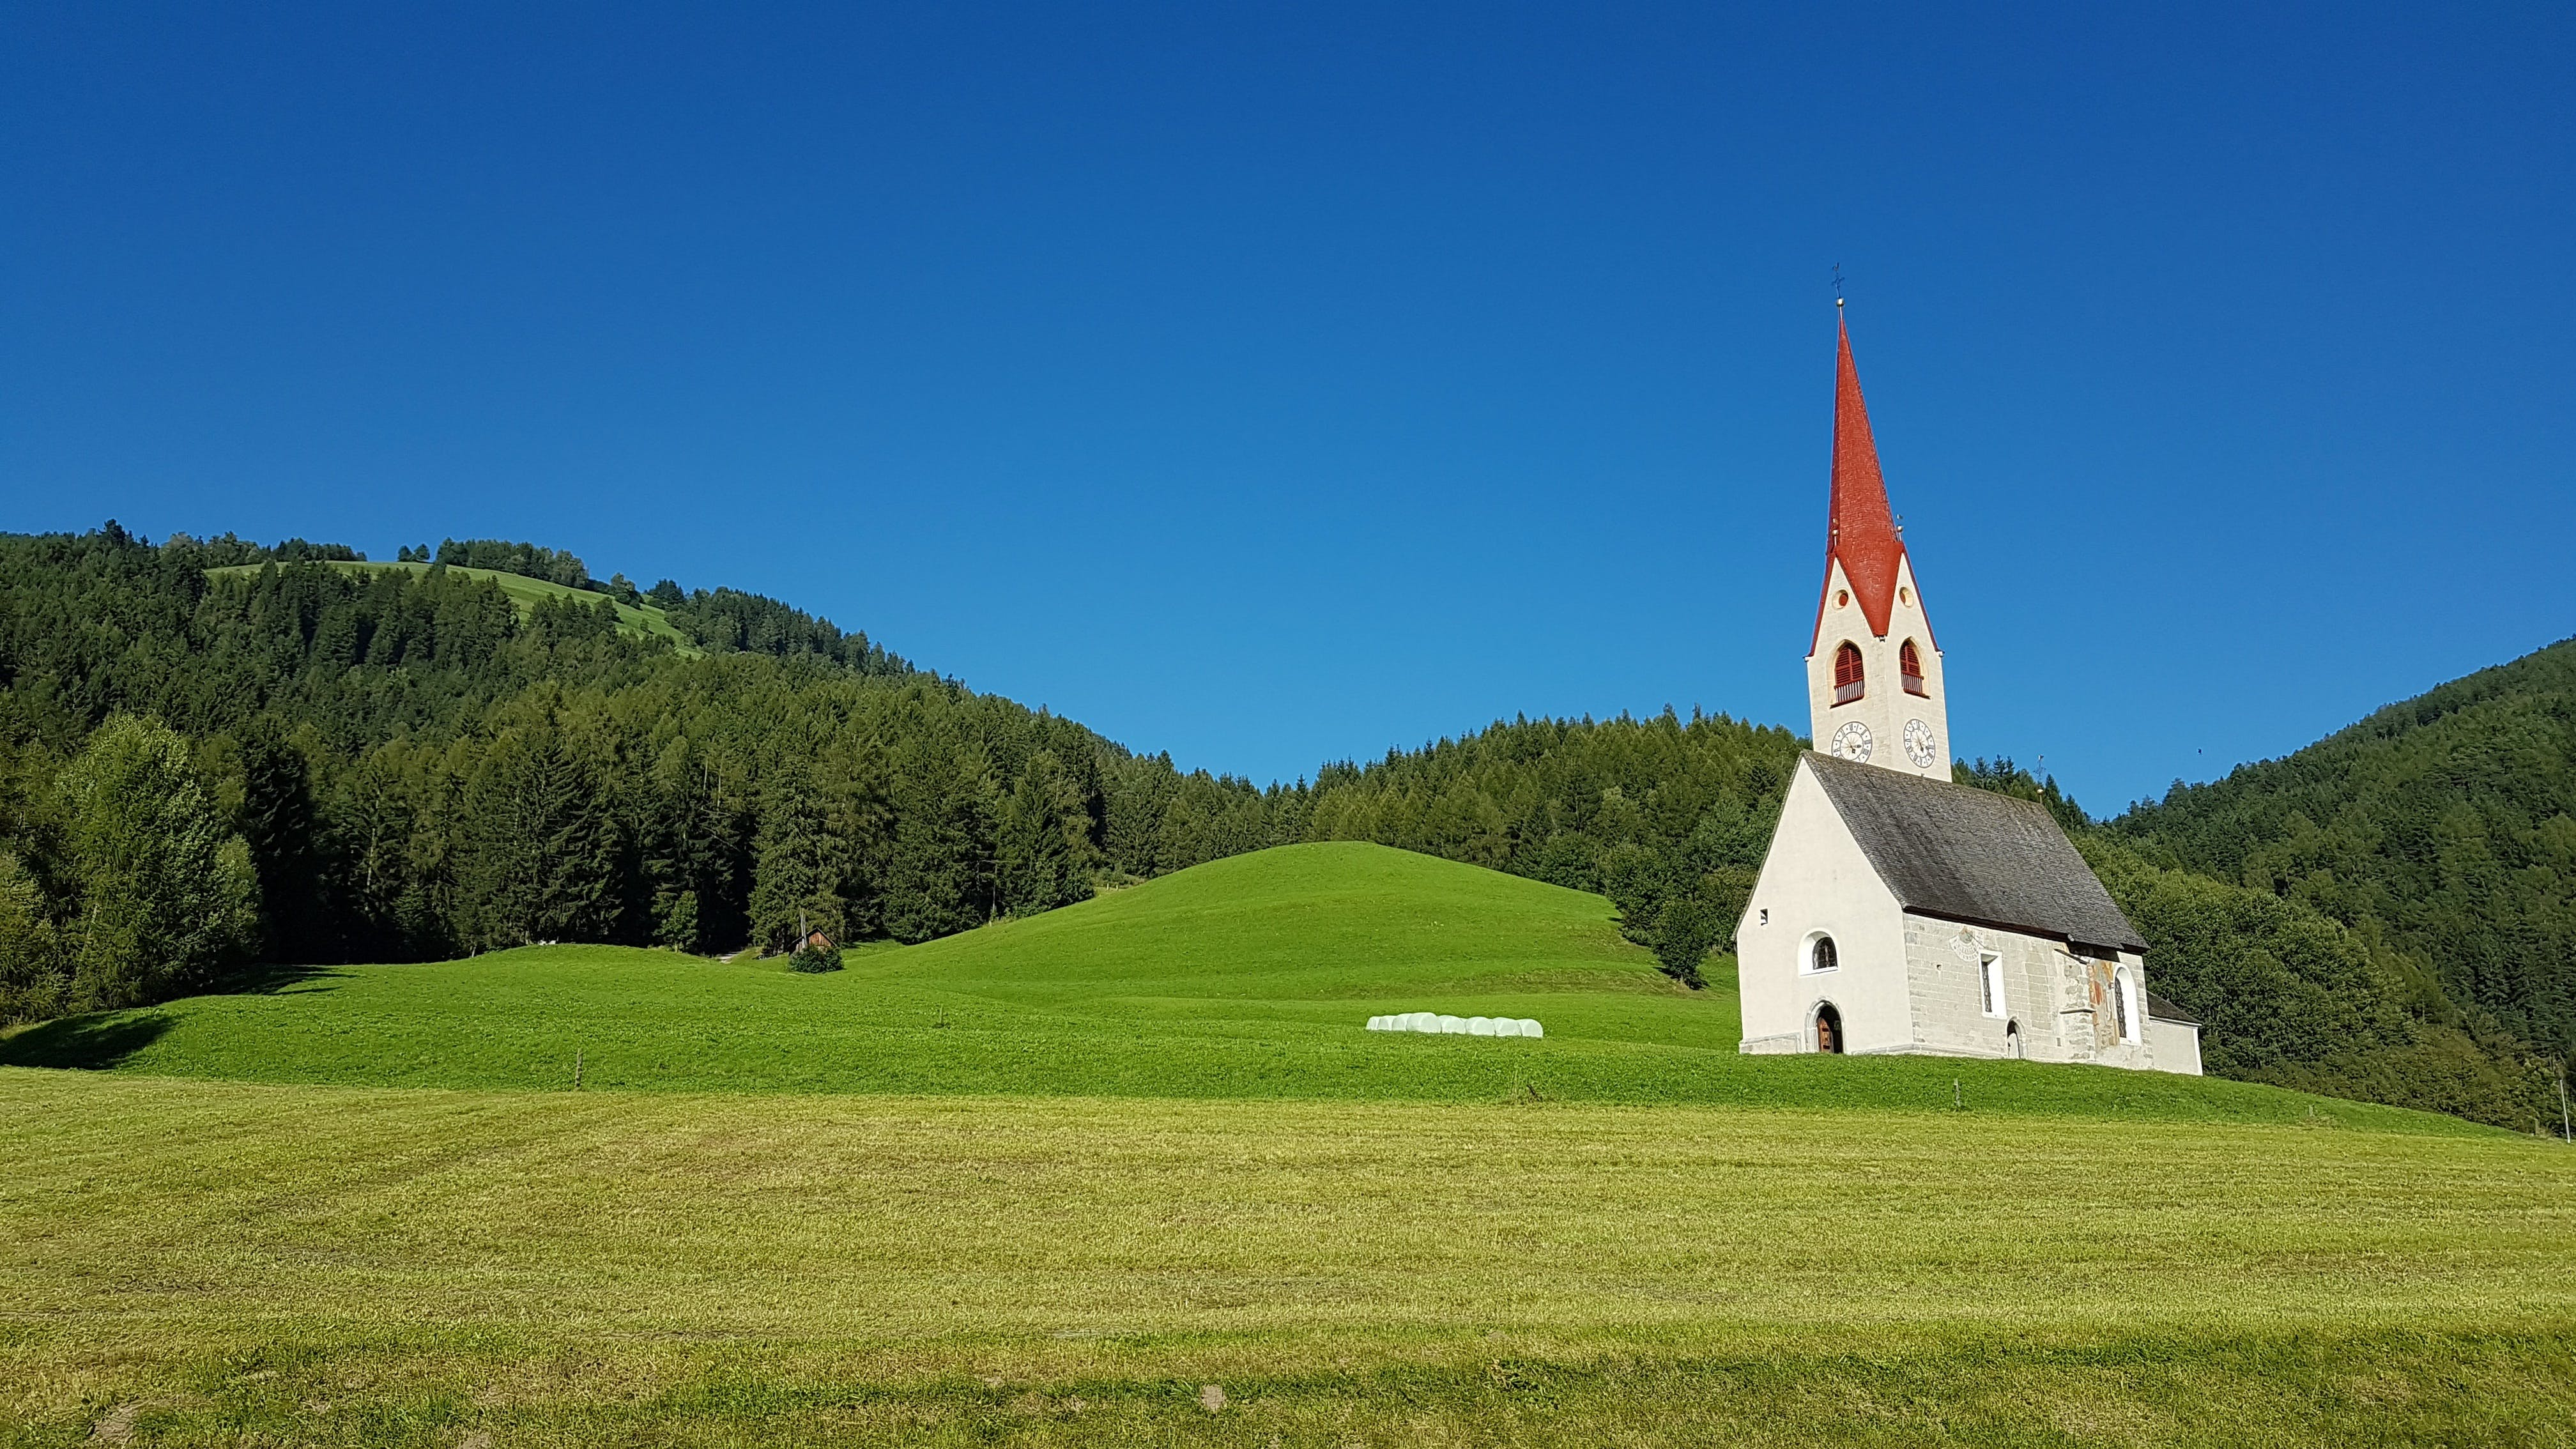 White Gray and Red Chapel on Green Field during Clear Sky Day Time